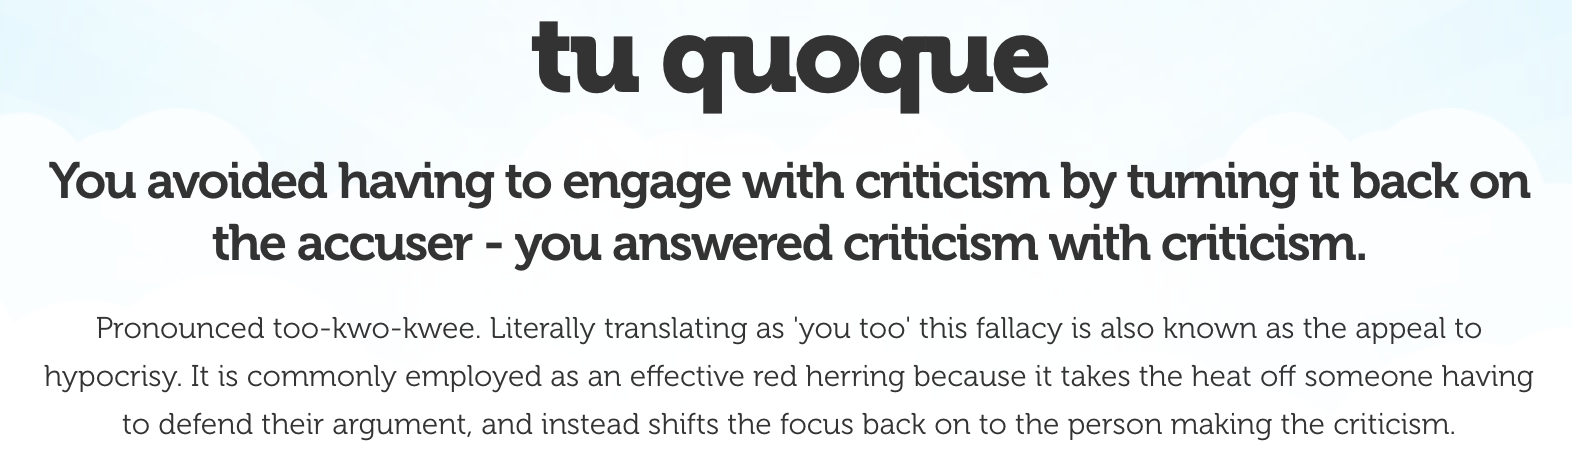 You avoided having to engage with criticism by turning it back on the accuser - you answered criticism with criticism. Pronounced too-kwo-kwee. Literally translating as 'you too' this fallacy is also known as the appeal to hypocrisy. It is commonly employed as an effective red herring because it takes the heat off someone having to defend their argument, and instead shifts the focus back on to the person making the criticism.